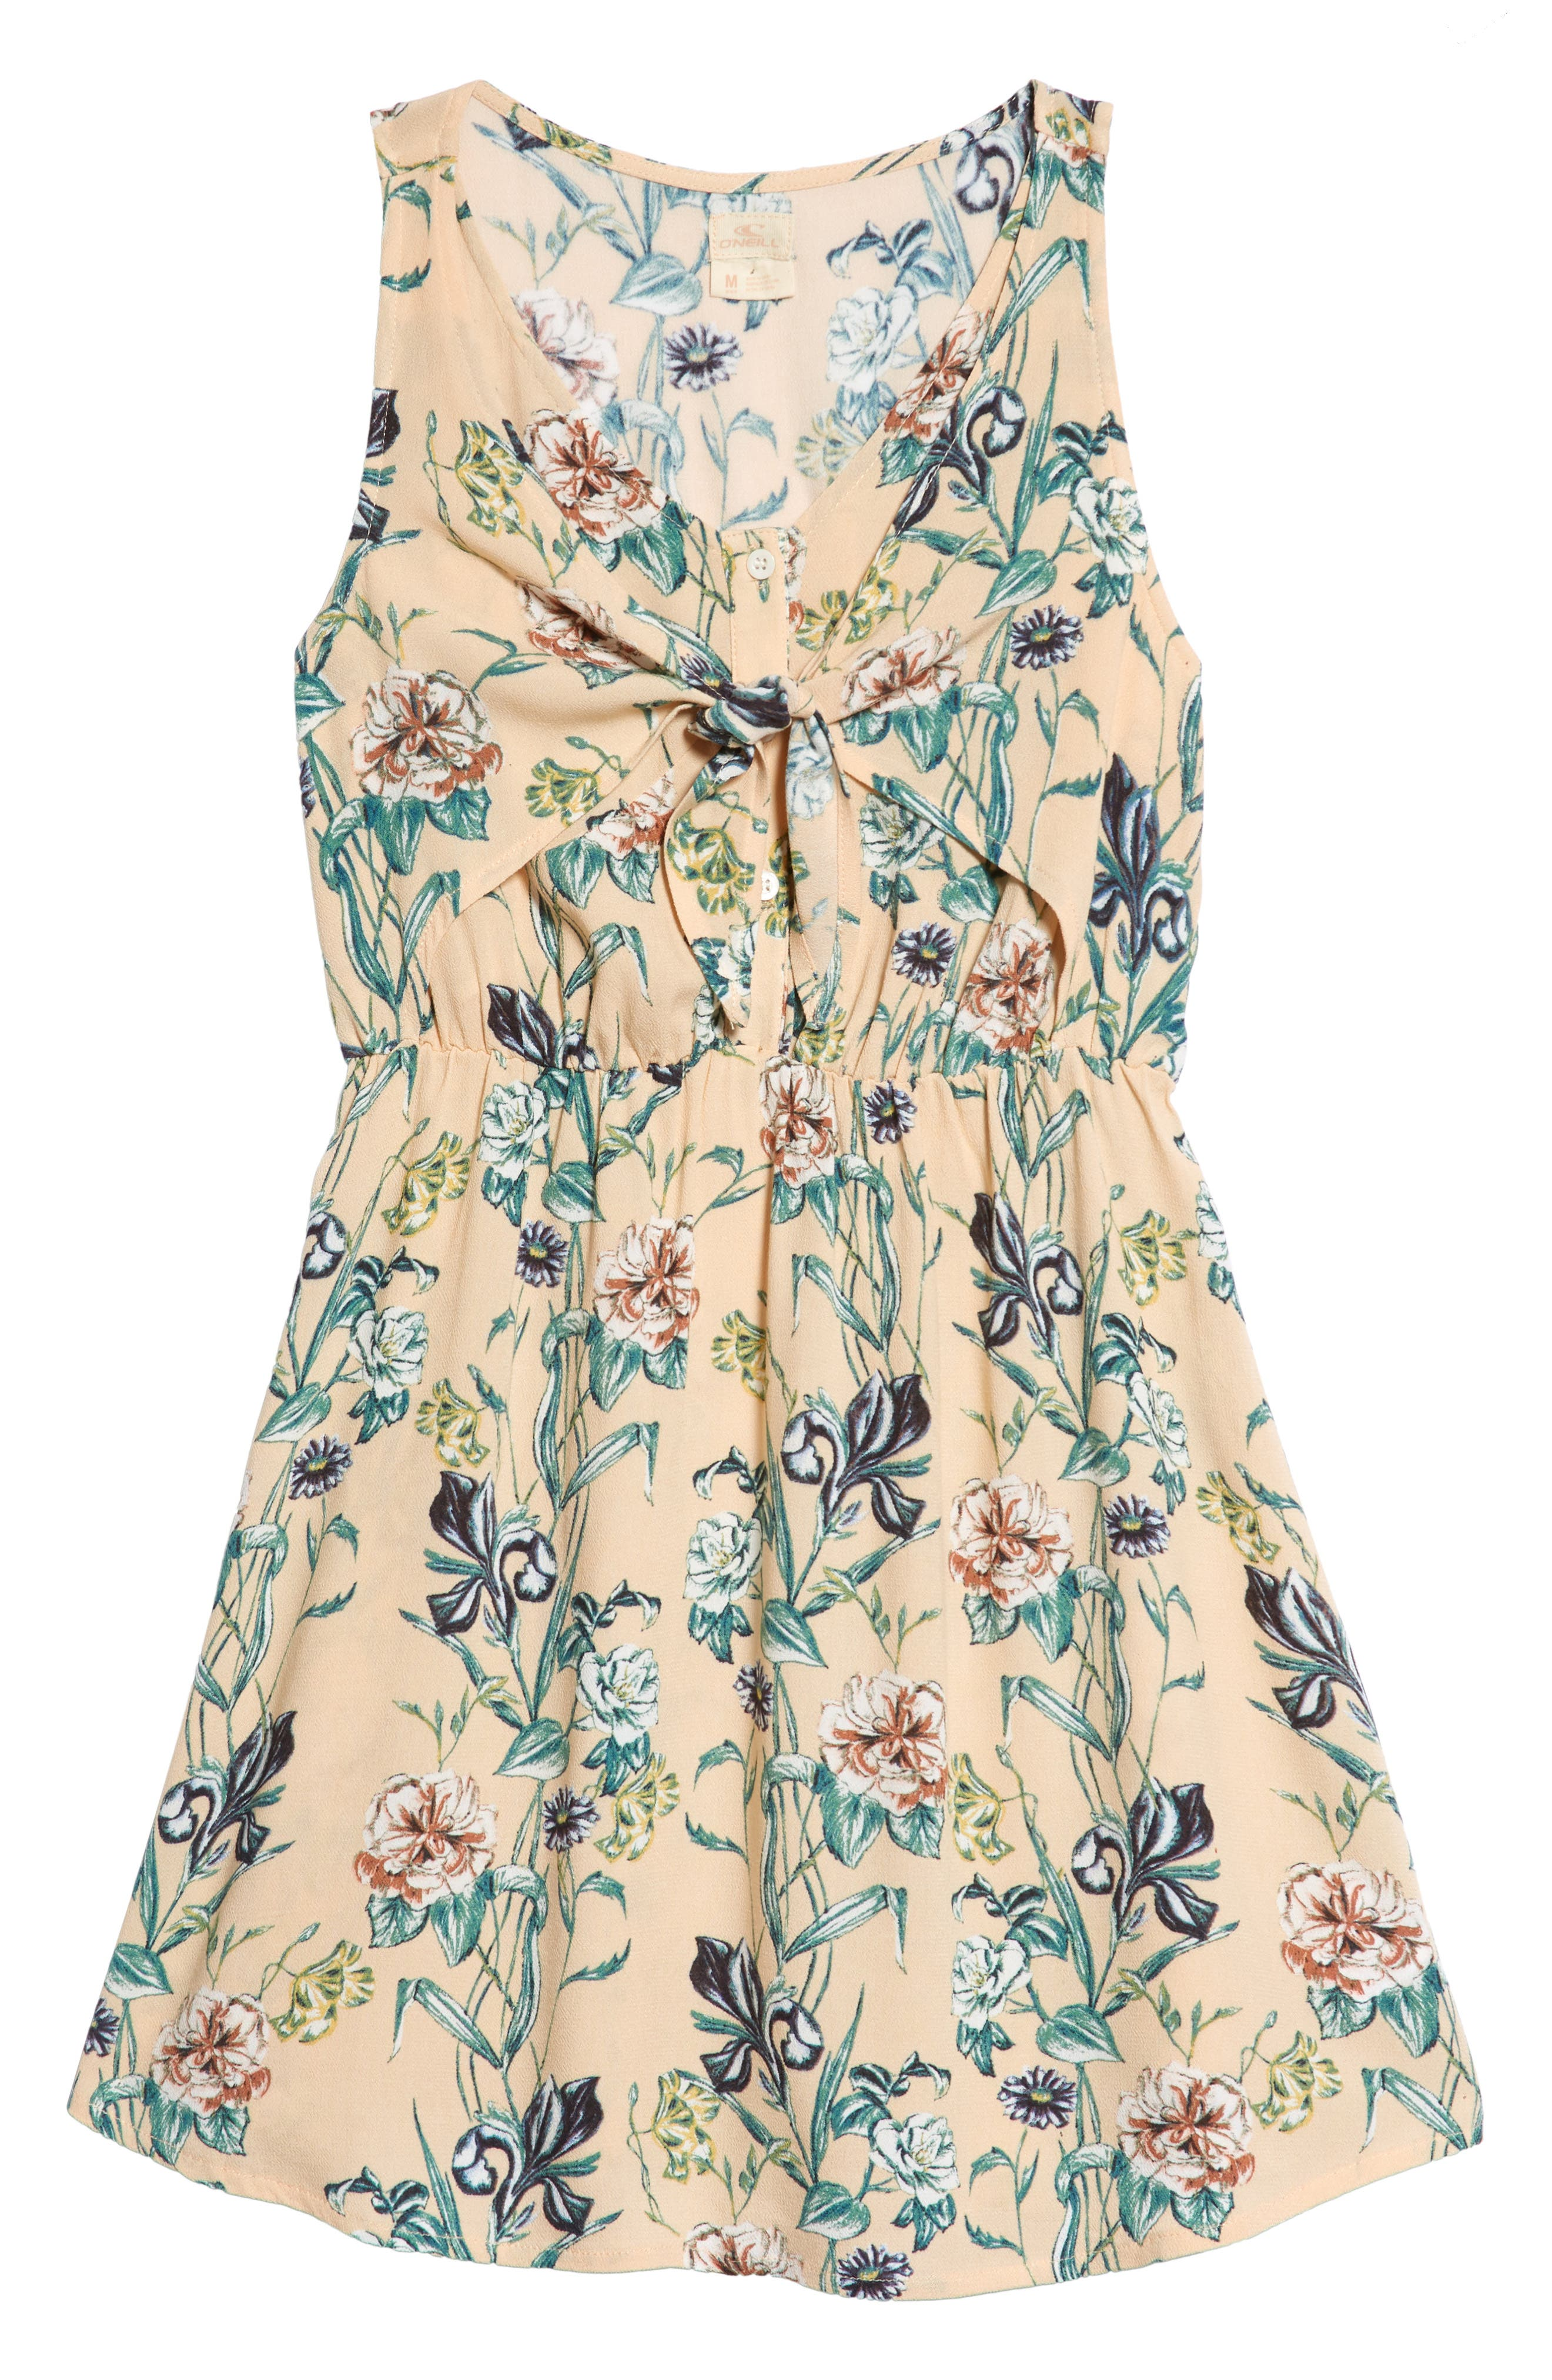 Arky Knotted Floral Print Dress,                             Main thumbnail 1, color,                             900